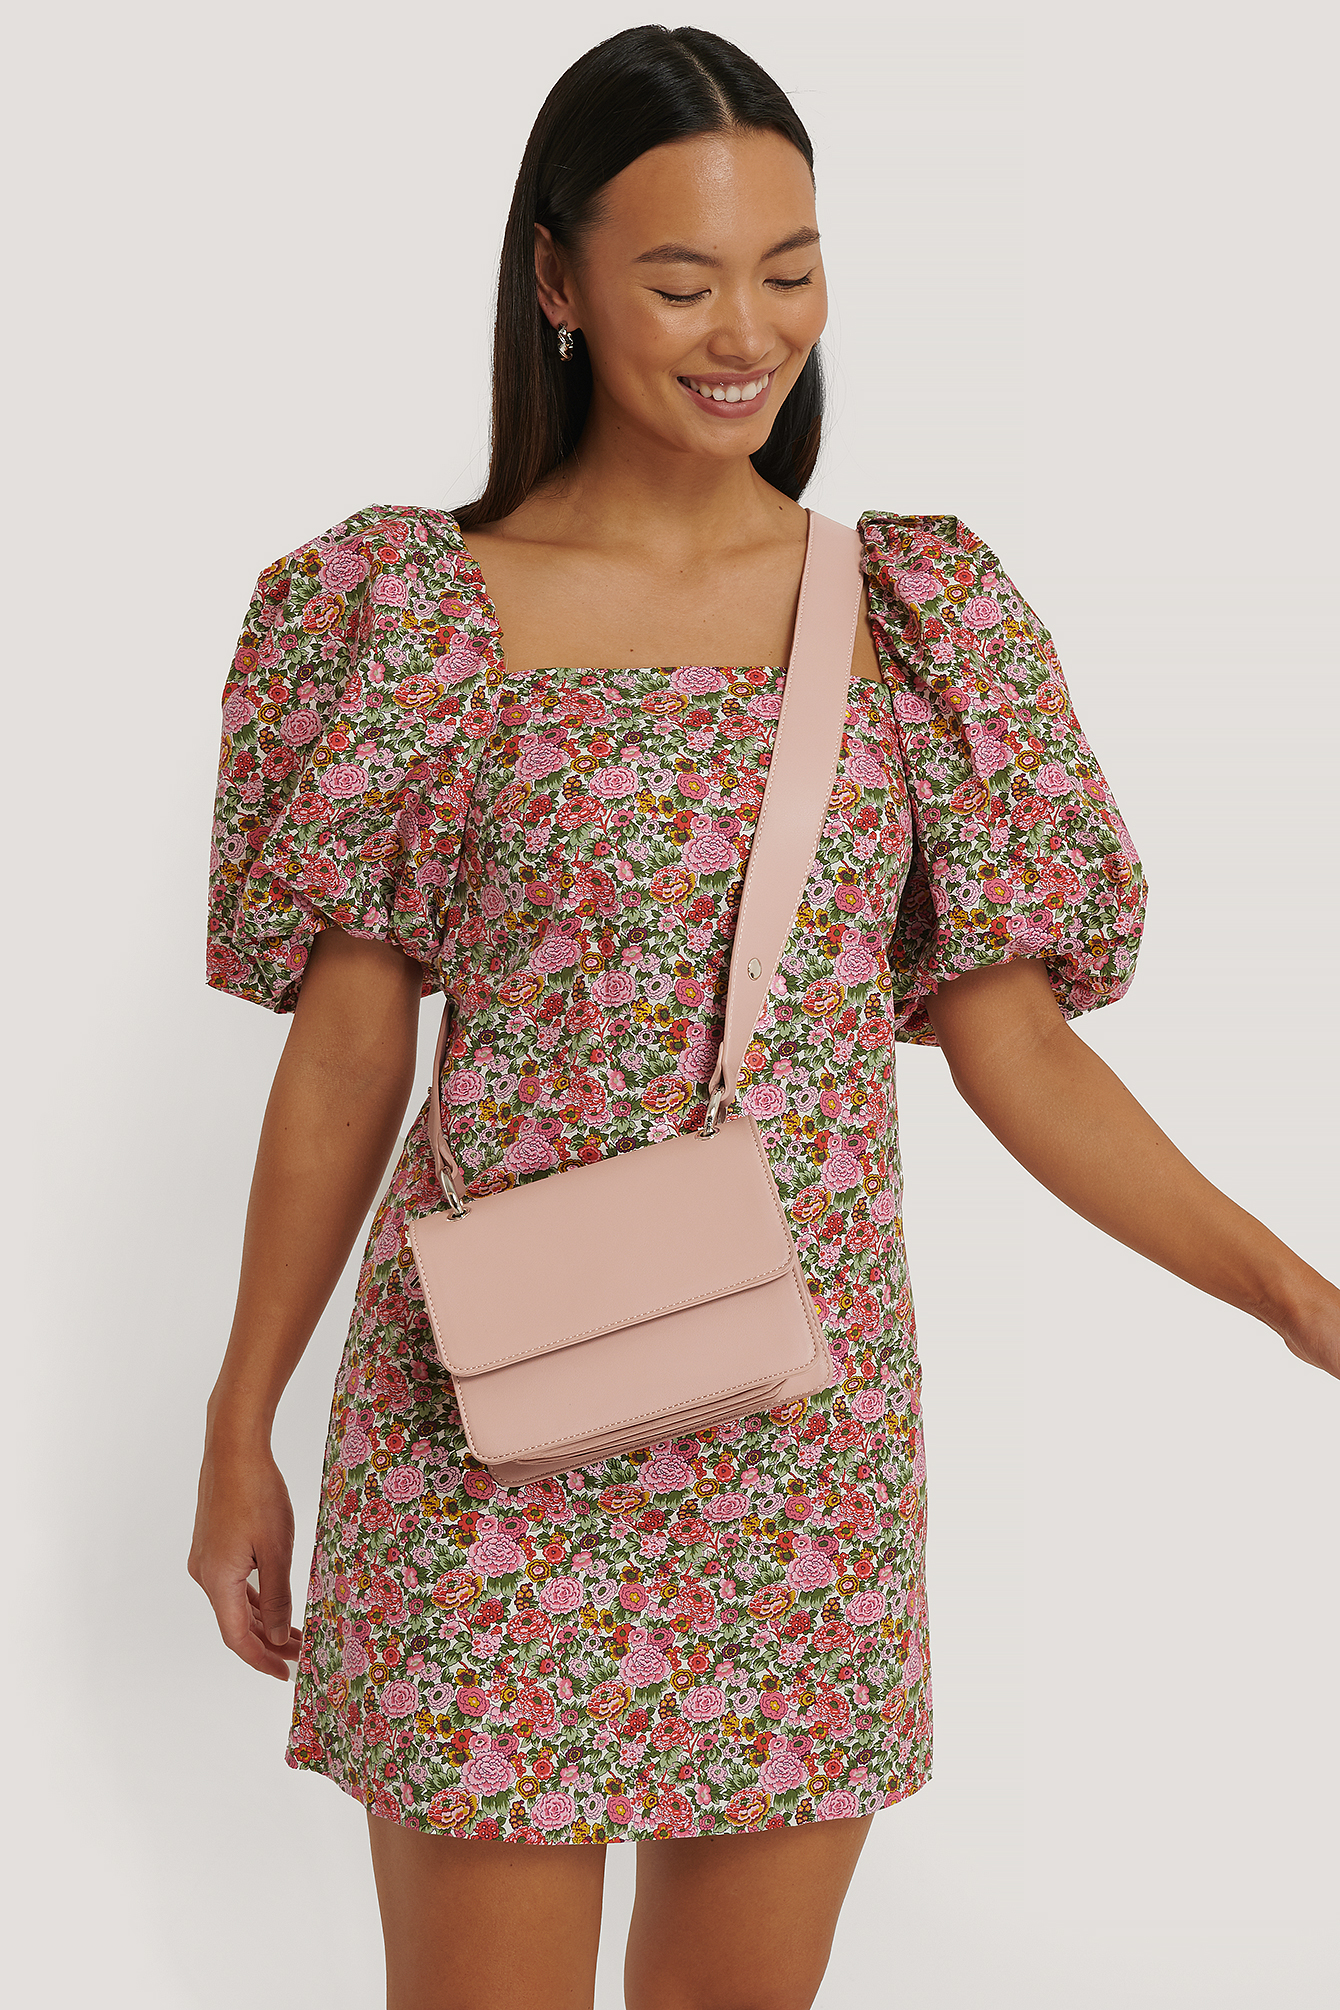 NA-KD Accessories Layered Compartment Shoulder Bag - Pink